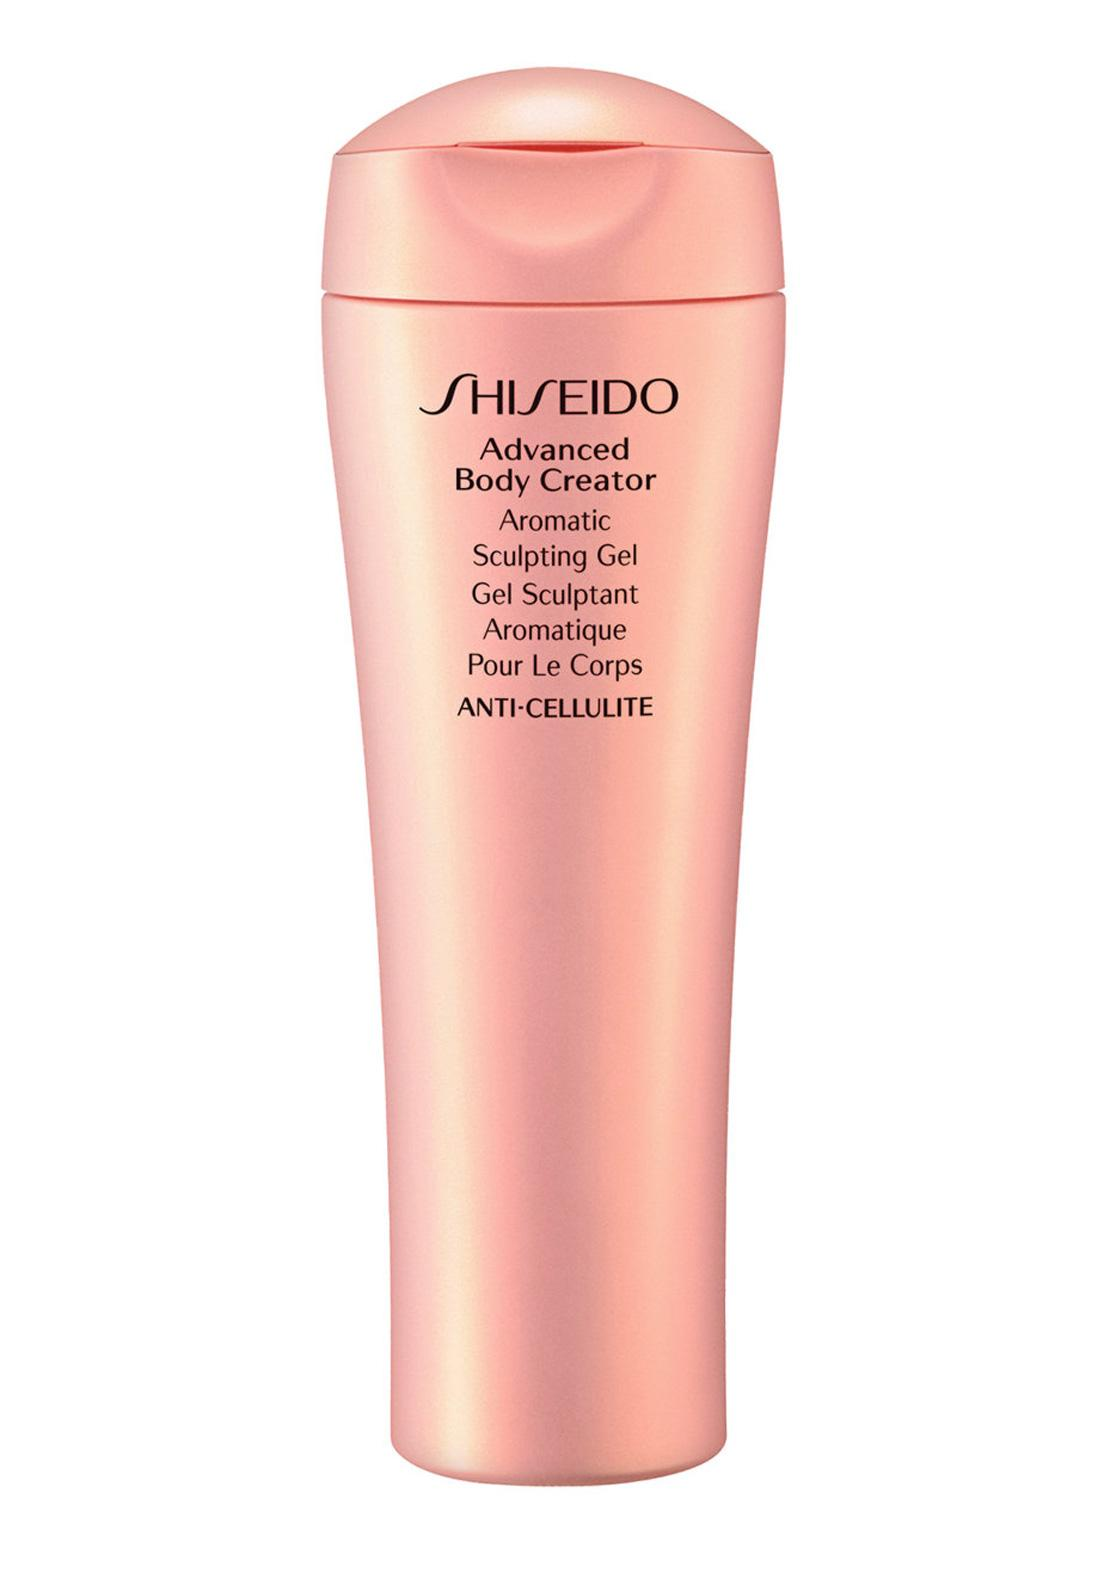 Shiseido Advanced Body Creator Aromatic Sculpting Gel (200ml)